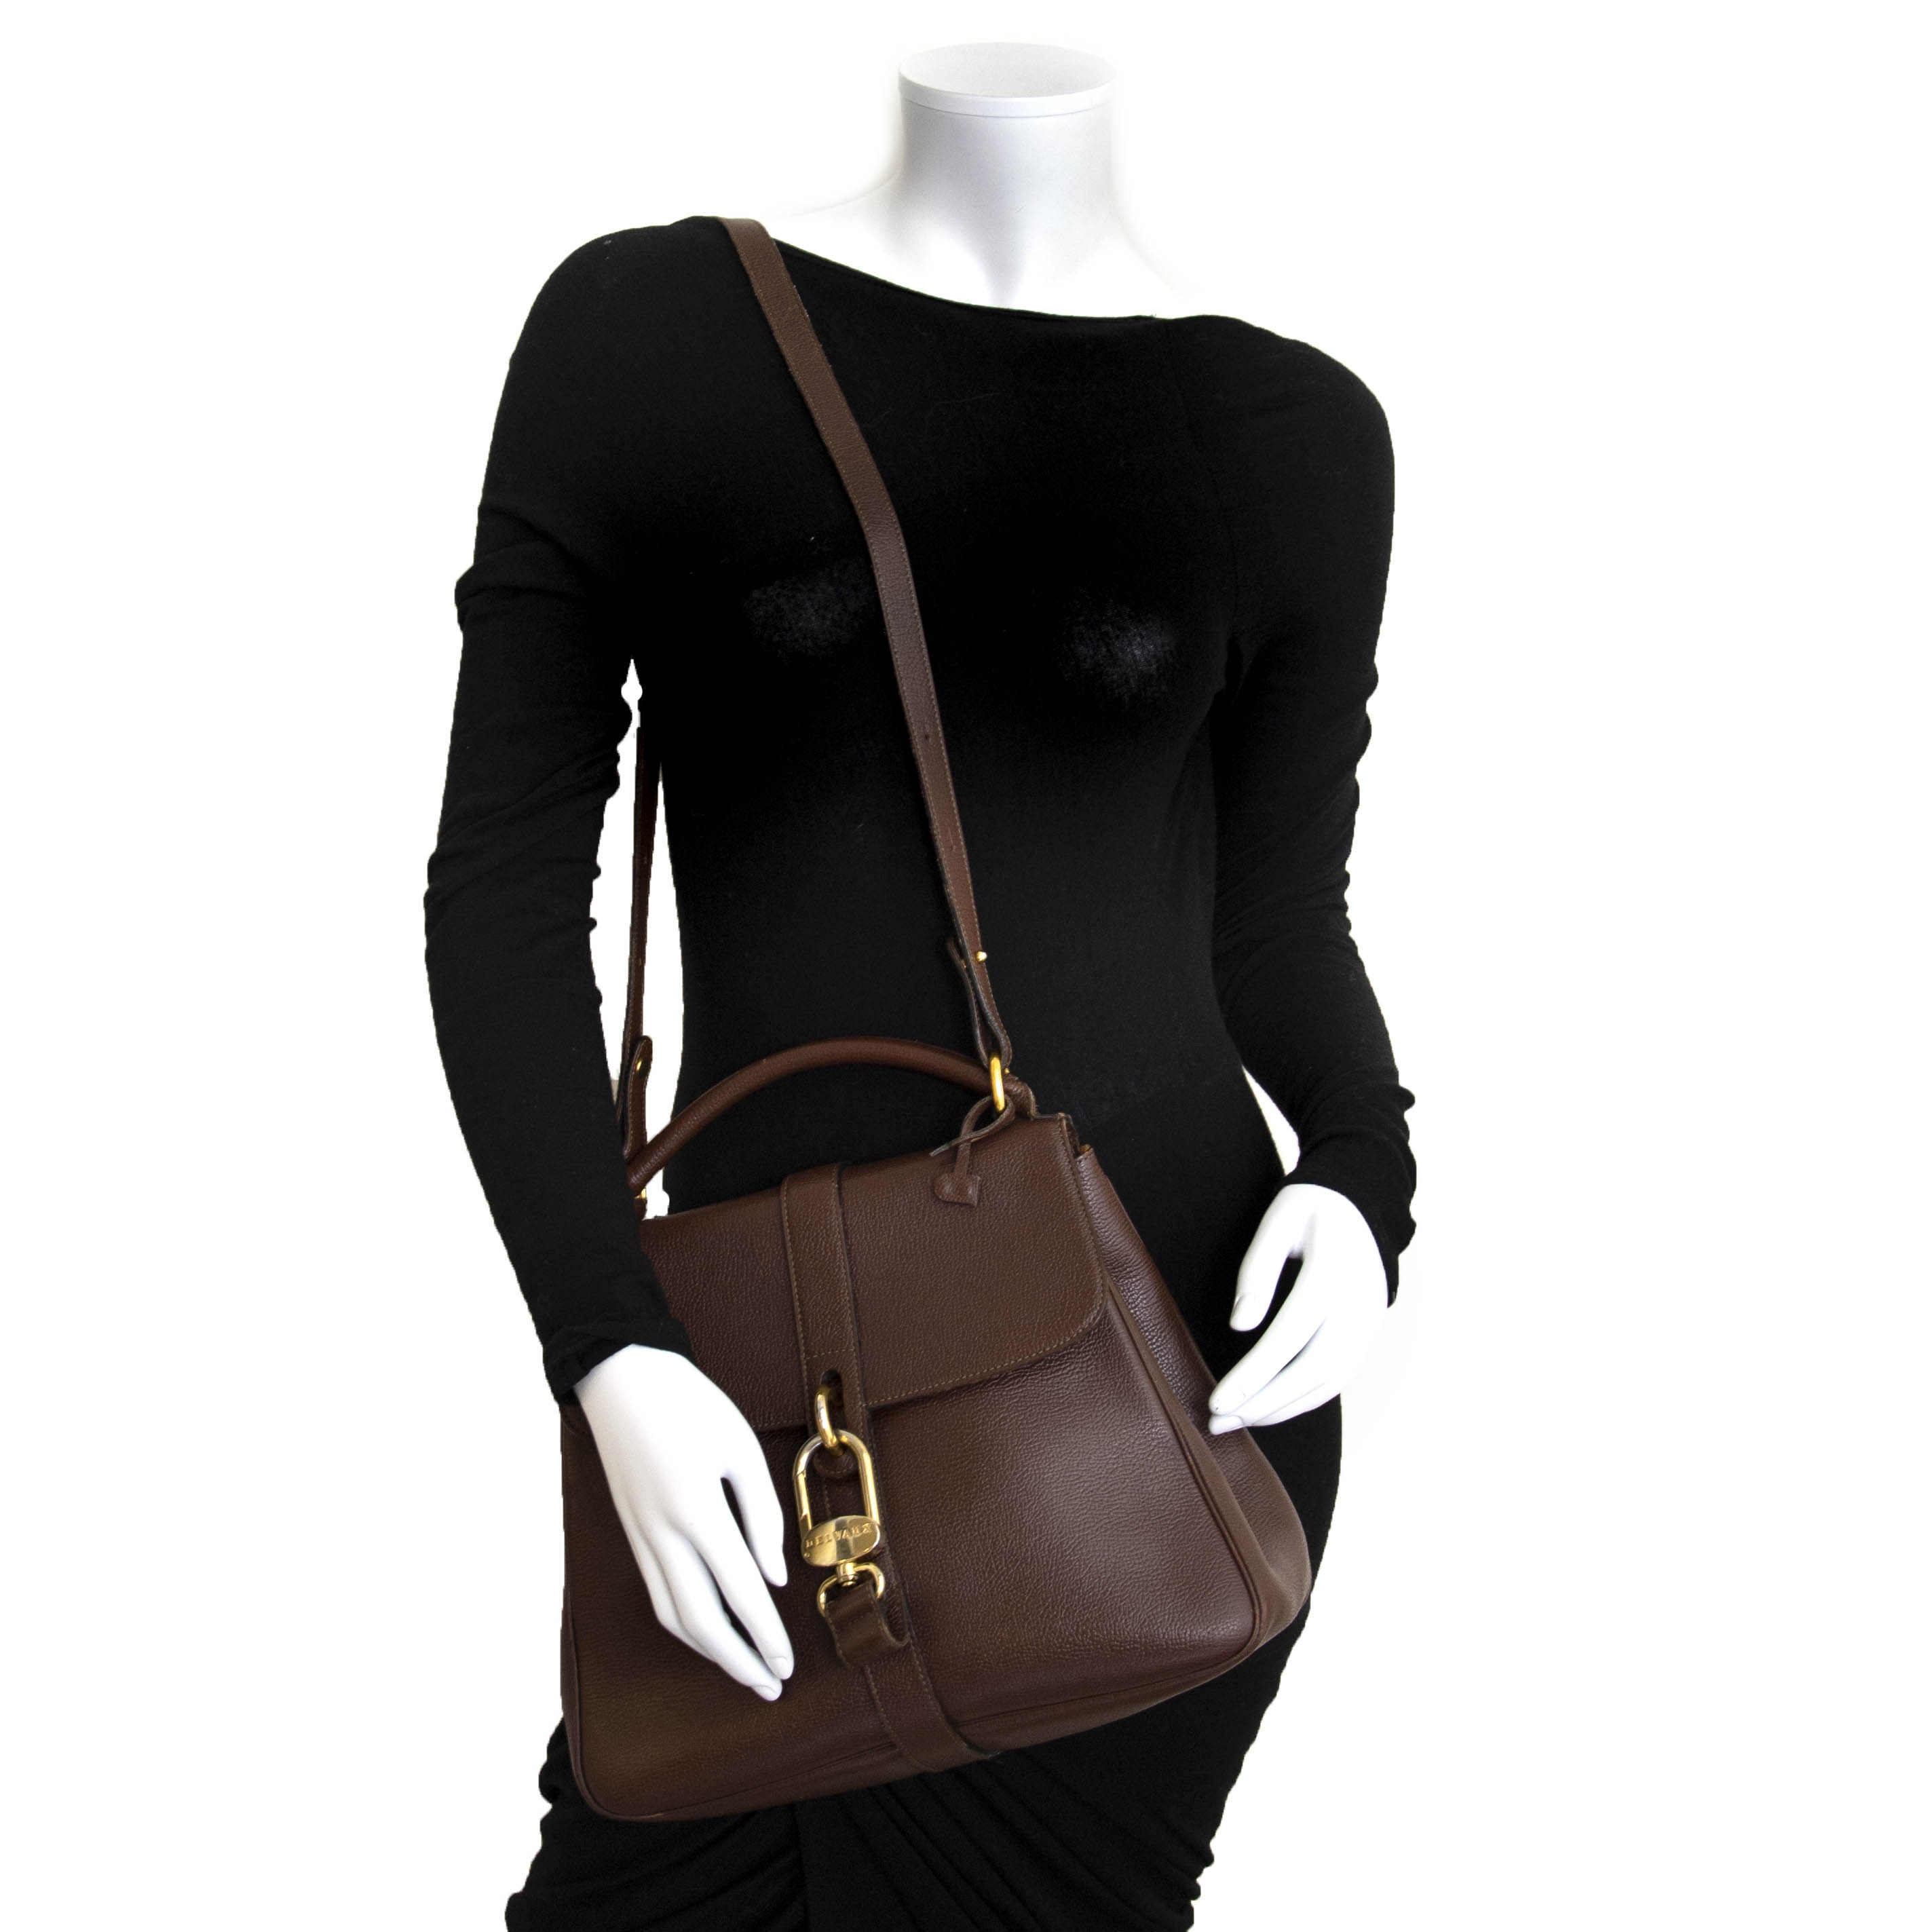 Delvaux Brown Gin Fizz Bag For the best price at LabelLov. Pour le meilleur prix à LabelLOV. Voor de beste prijs bij LabelLOV